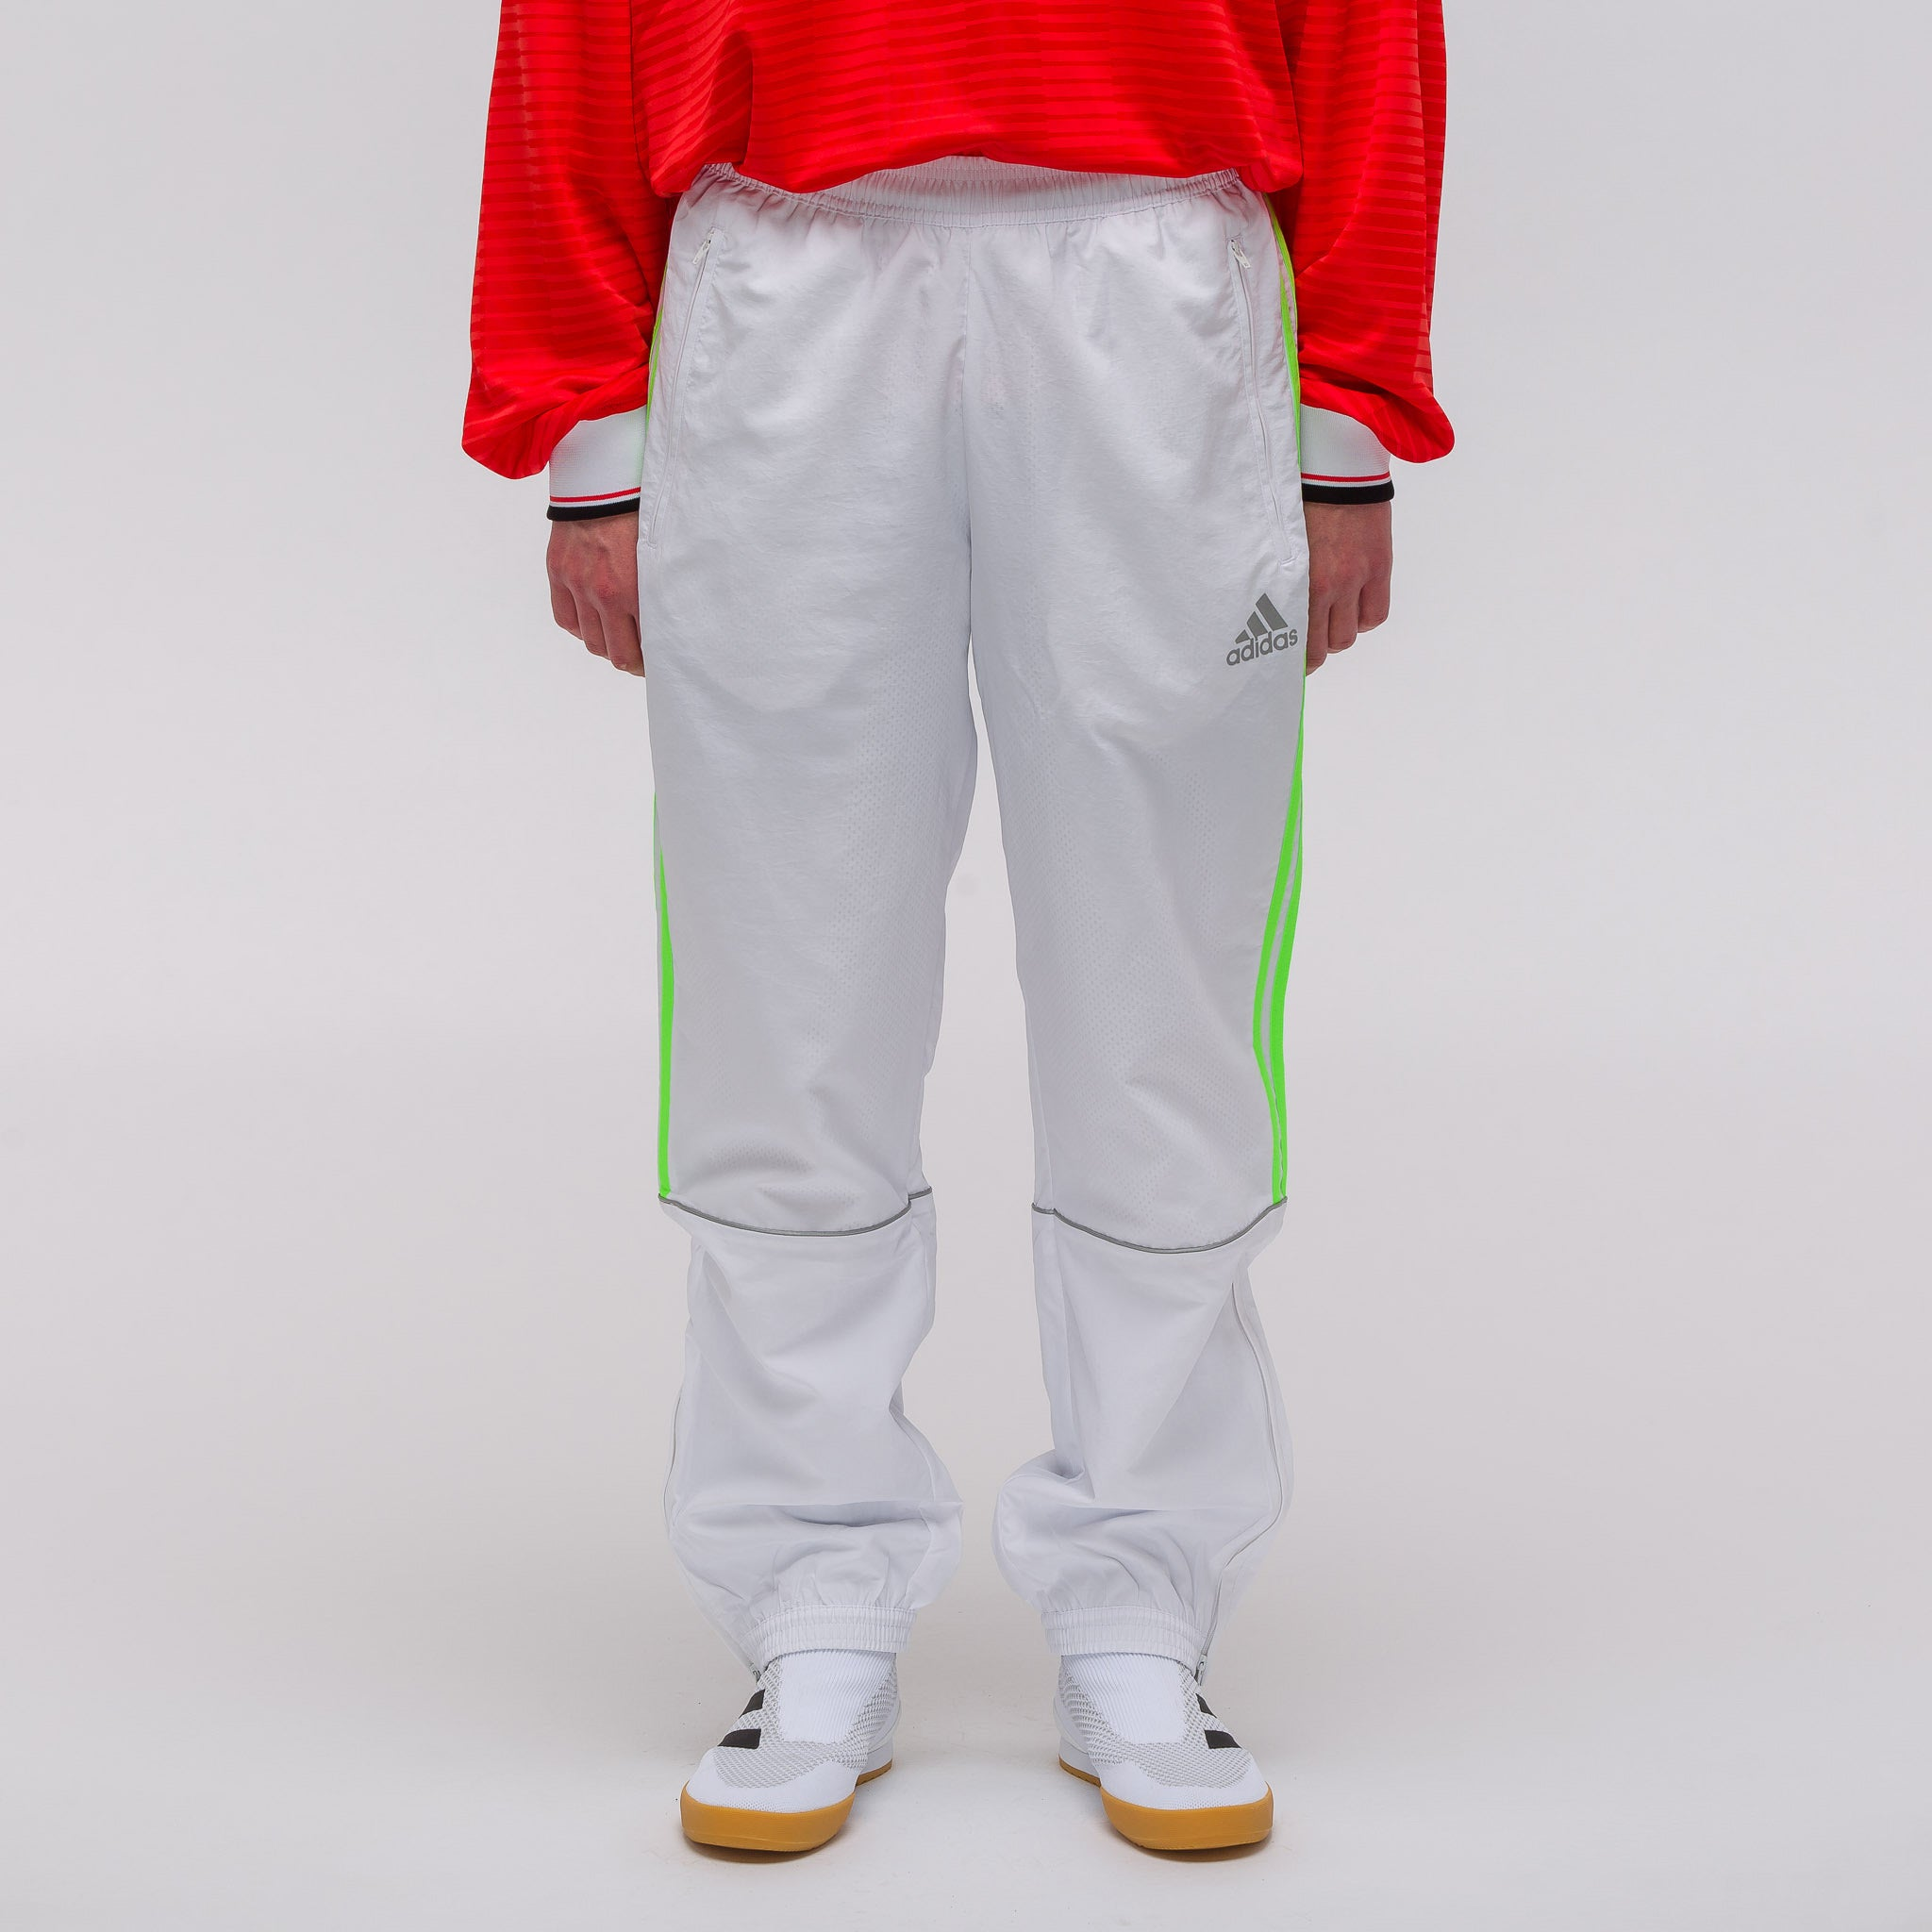 ... Others From Gosha Rubchinskiy. x Adidas Track Pants in White